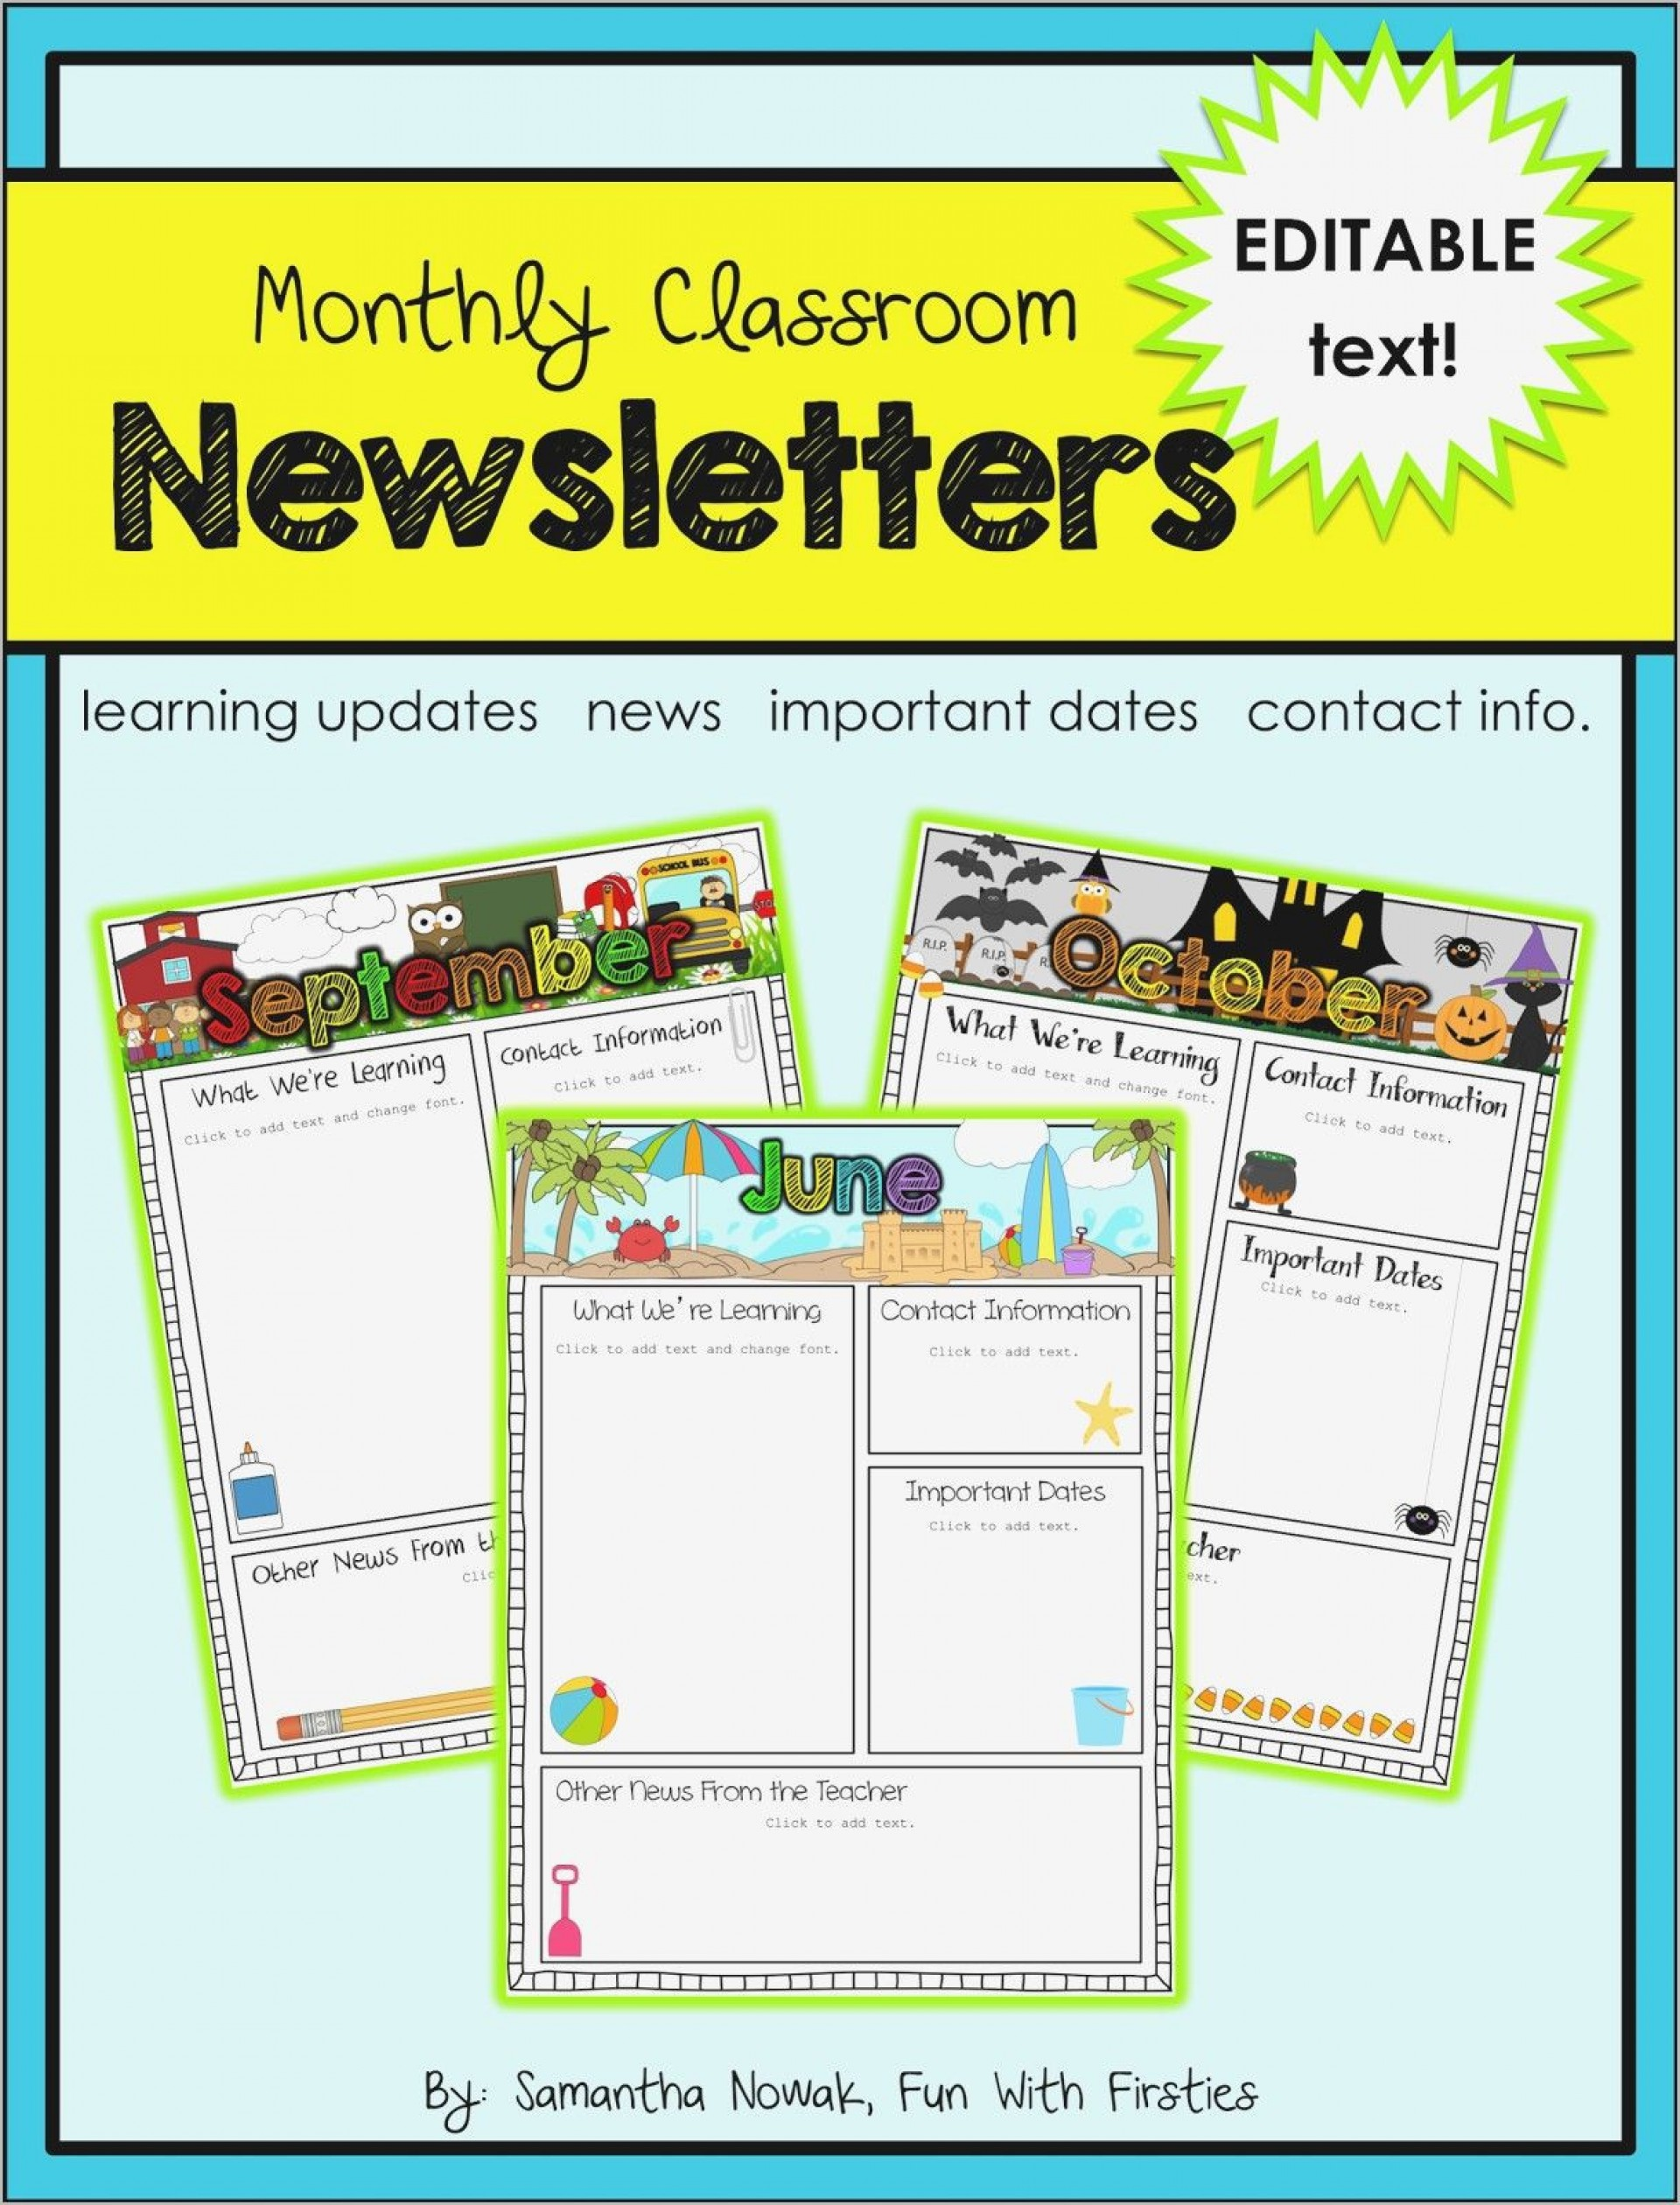 003 Awful Free Editable Daycare Newsletter Template For Word Idea  Classroom1920